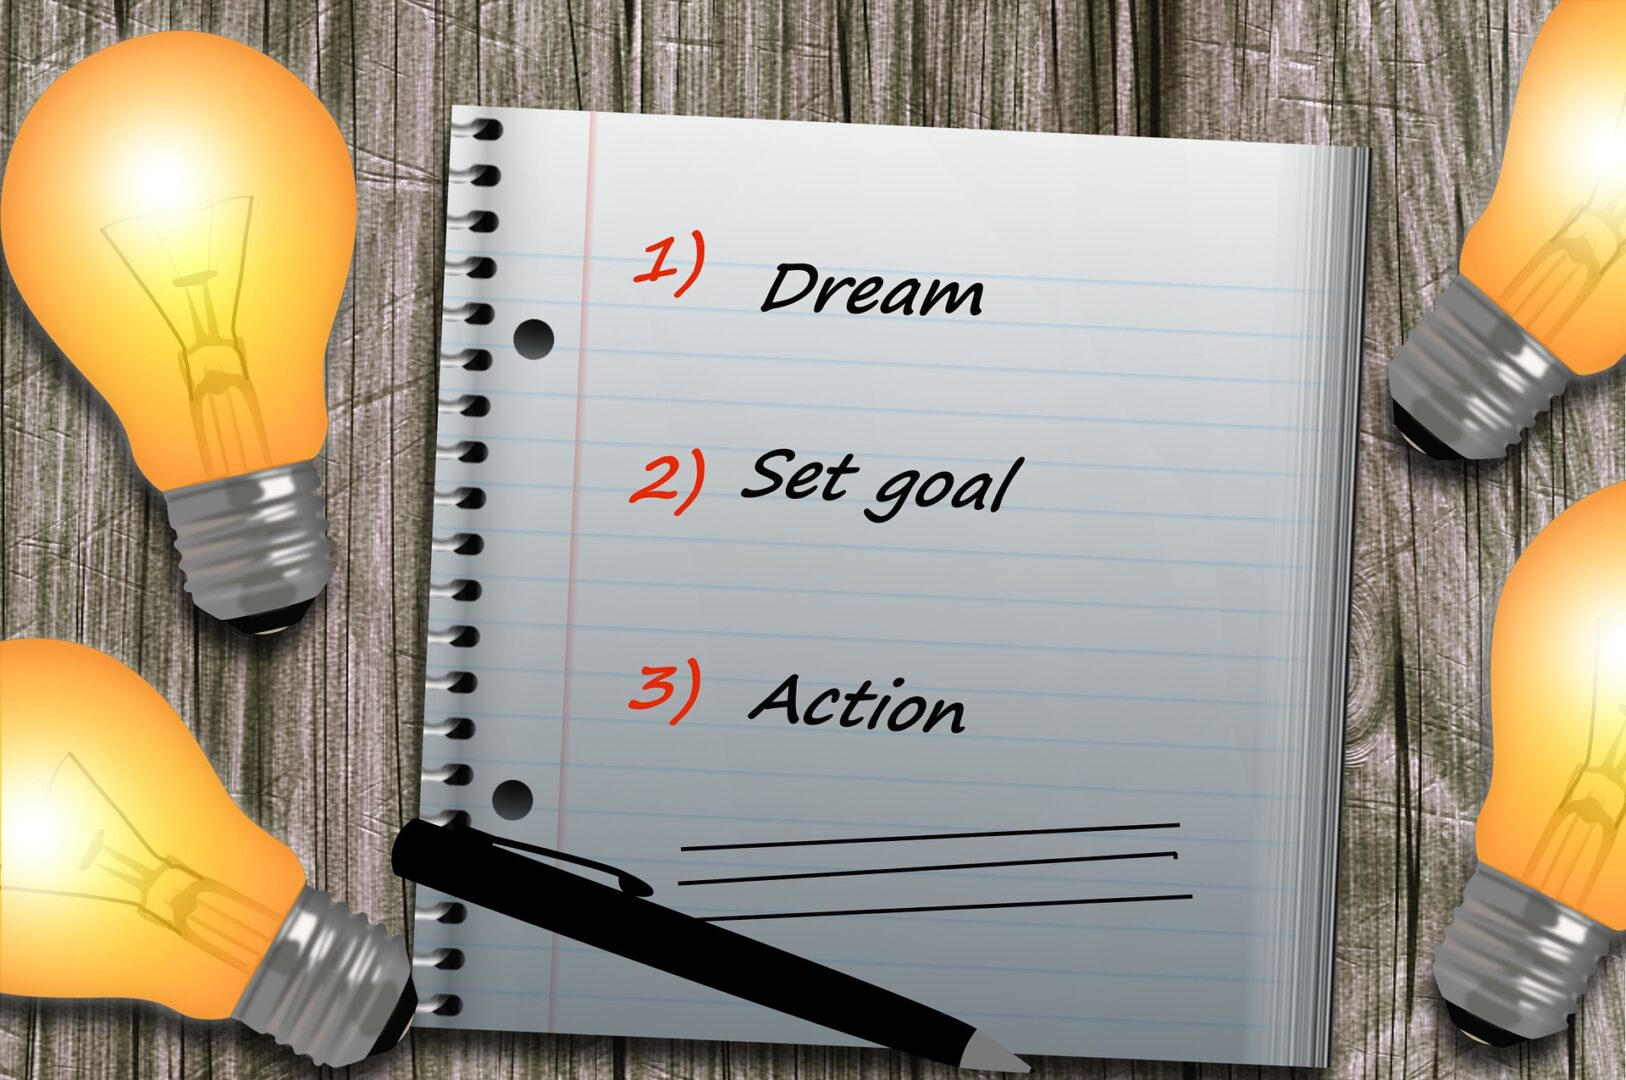 Notebook with 1. Dream, 2. Set goal, 3. Action